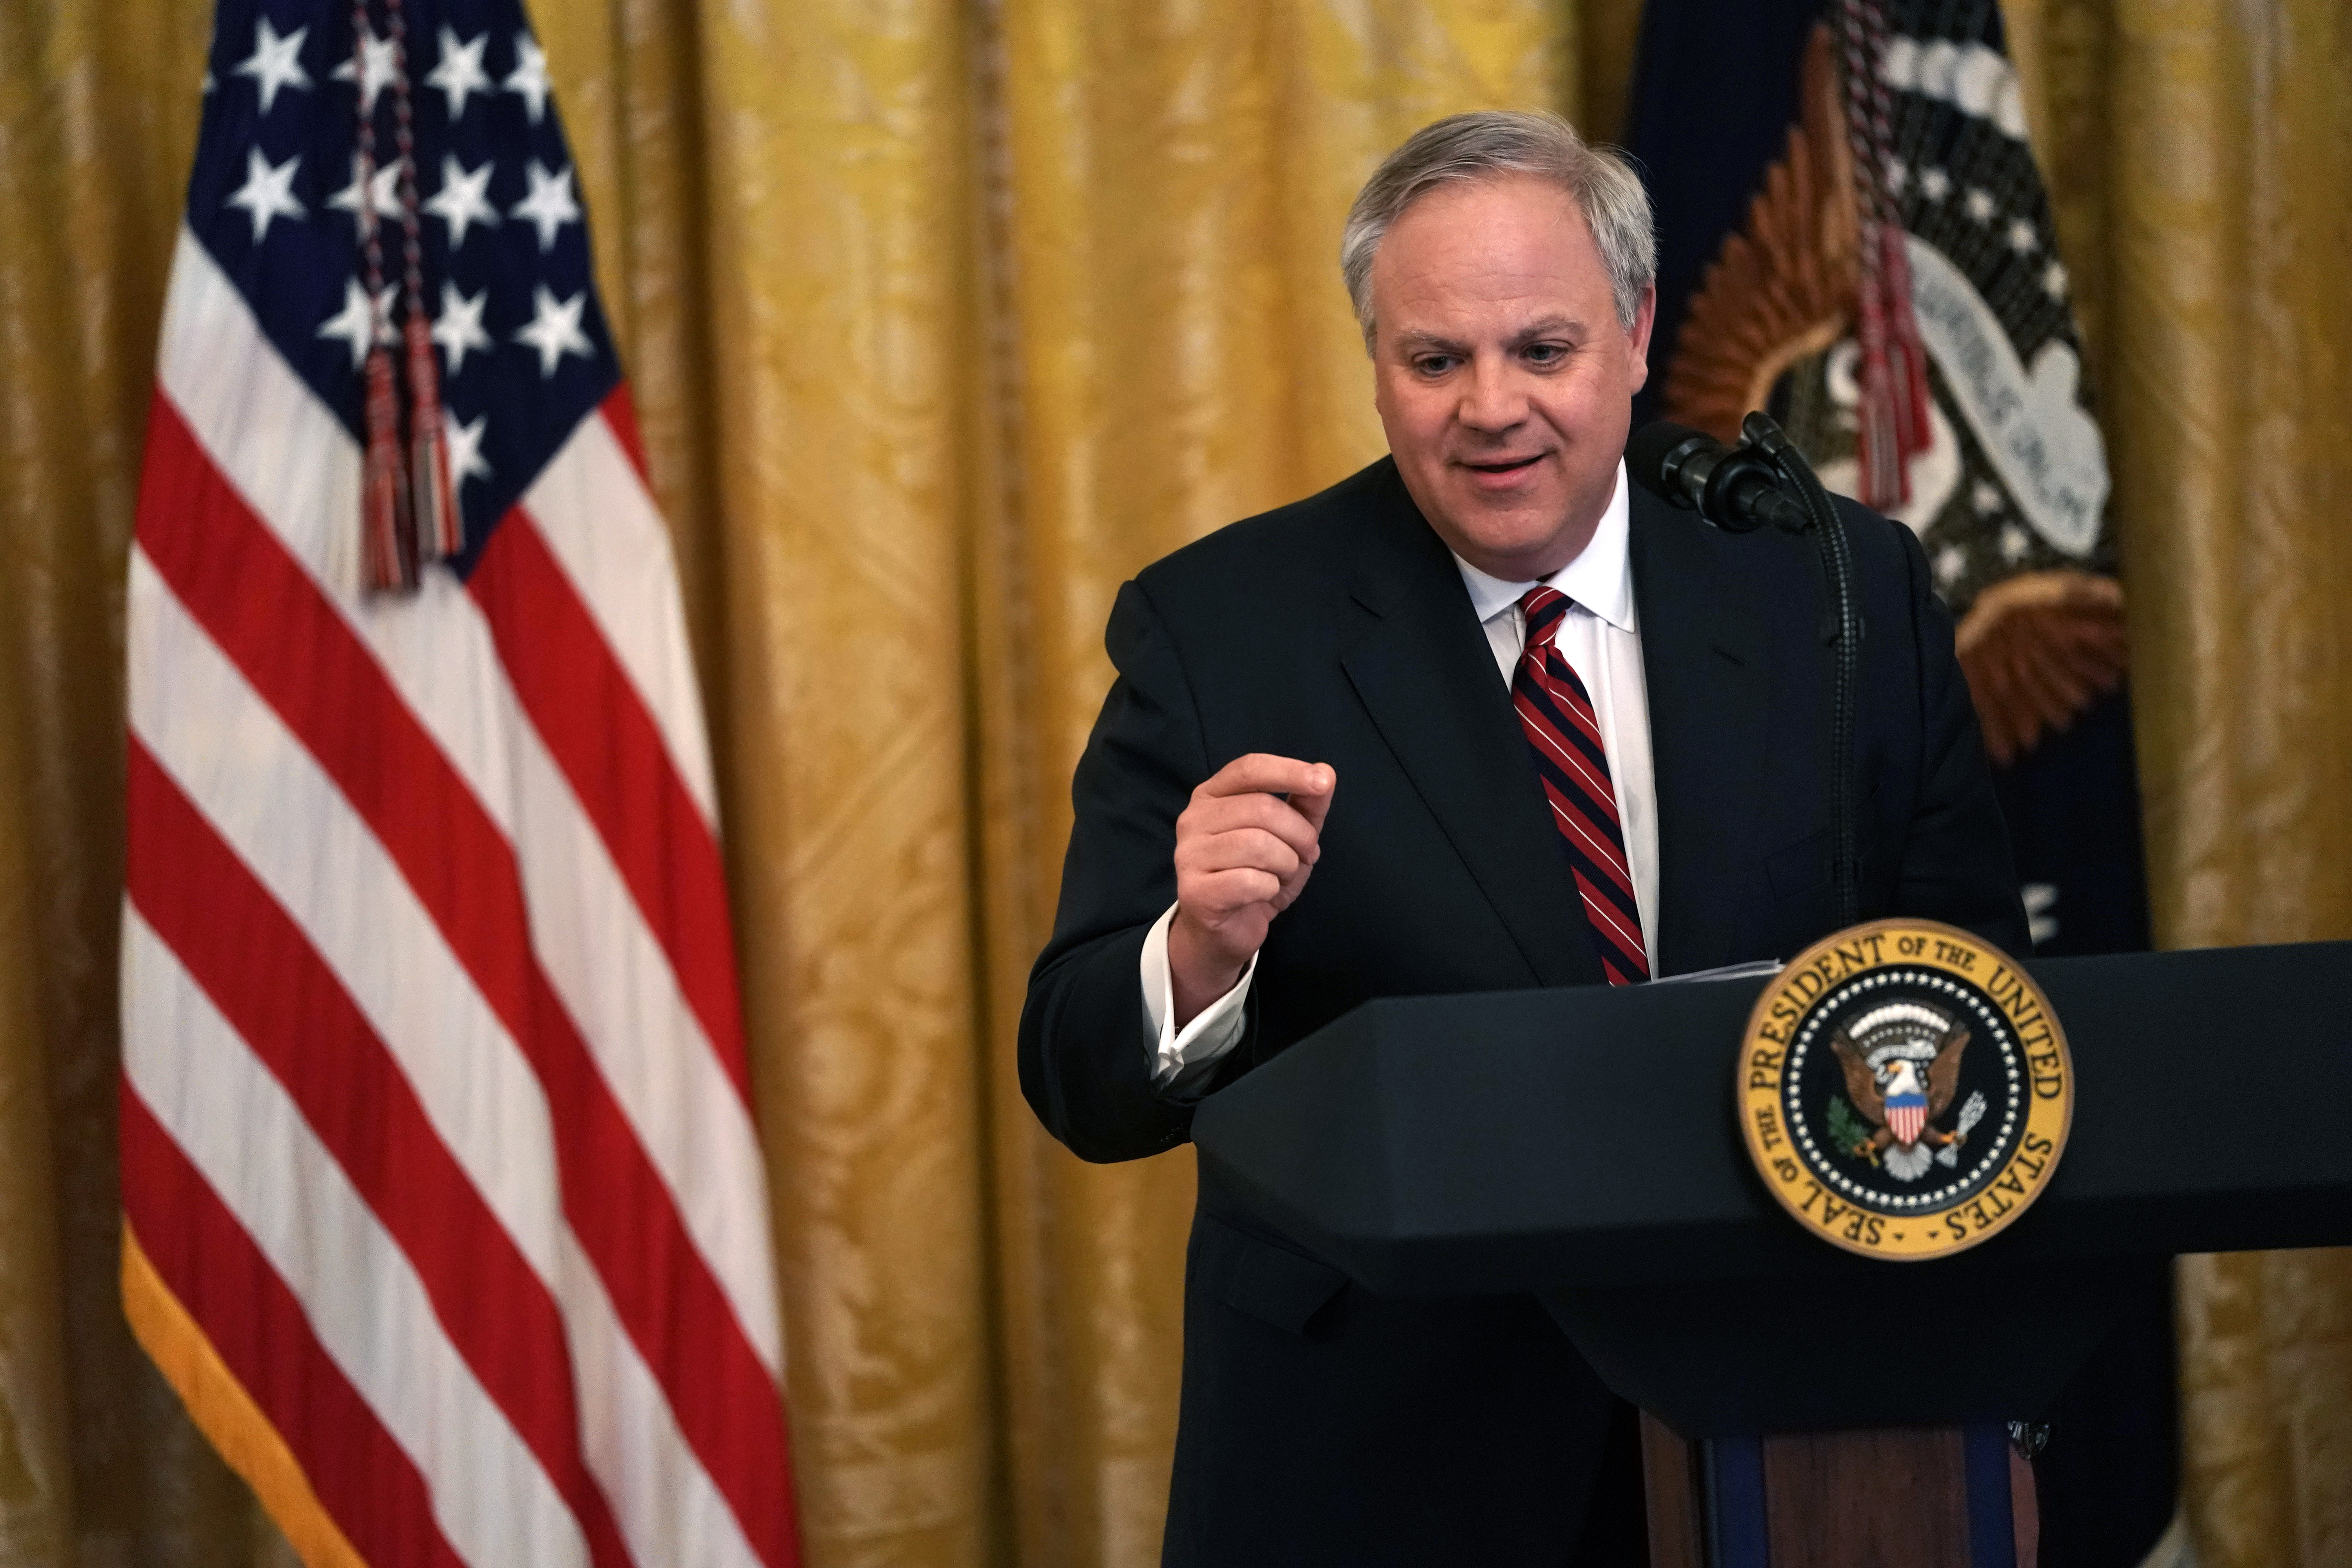 U.S. Secretary of Interior David Bernhardt speaks during an East Room event on the environment July 7, 2019 at the White House in Washington, DC. (Alex Wong/Getty Images)